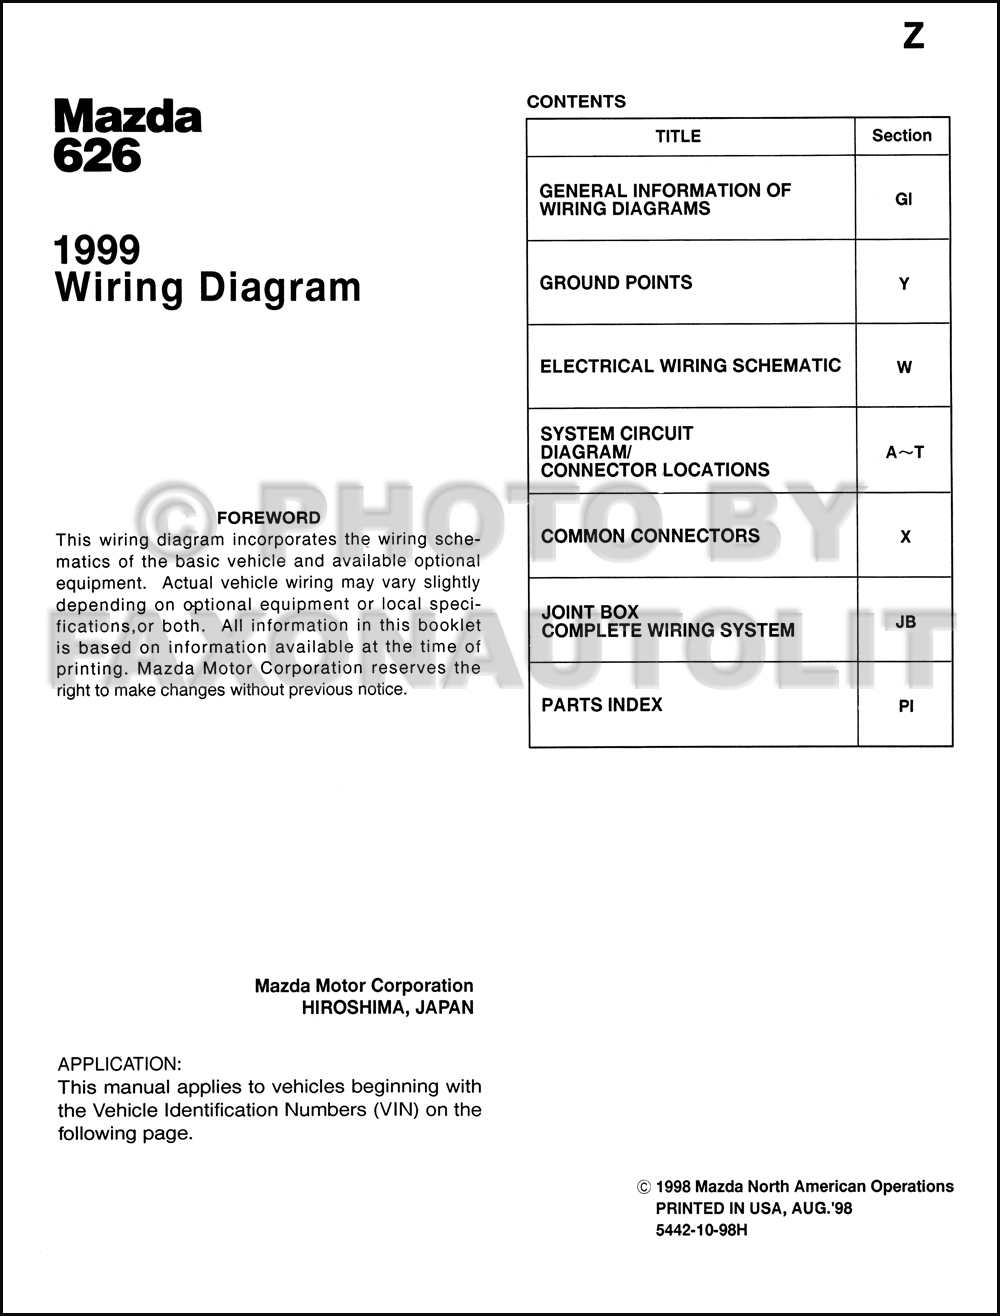 1999 Mazda 626 Wiring Diagram List Of Schematic Circuit